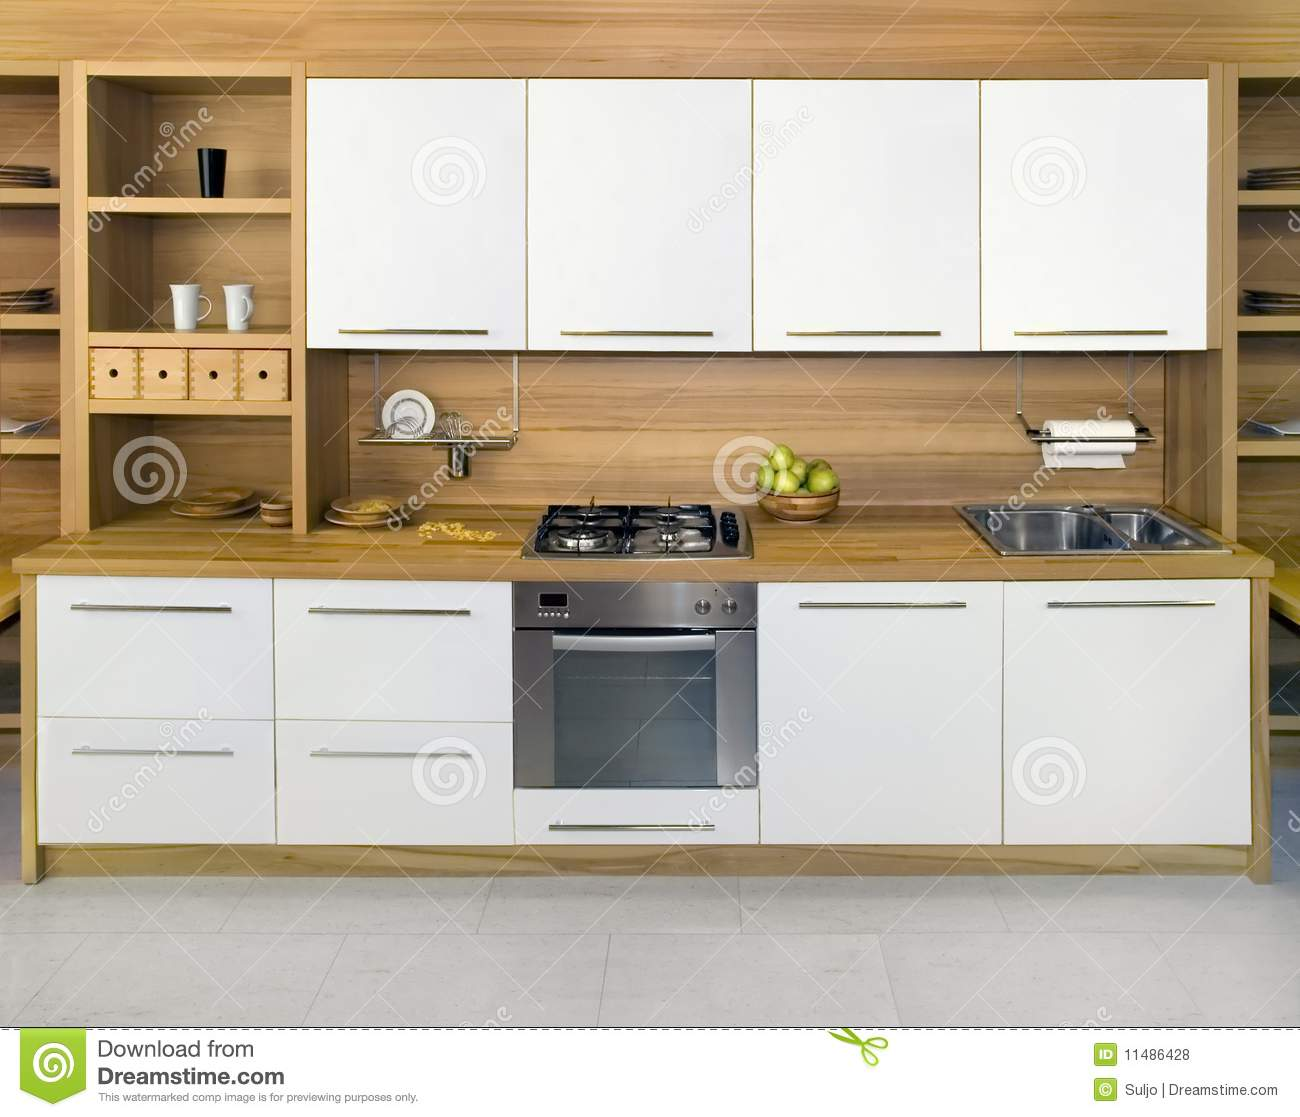 Wooden Kitchen Royalty Free Stock Photos Image 11486428